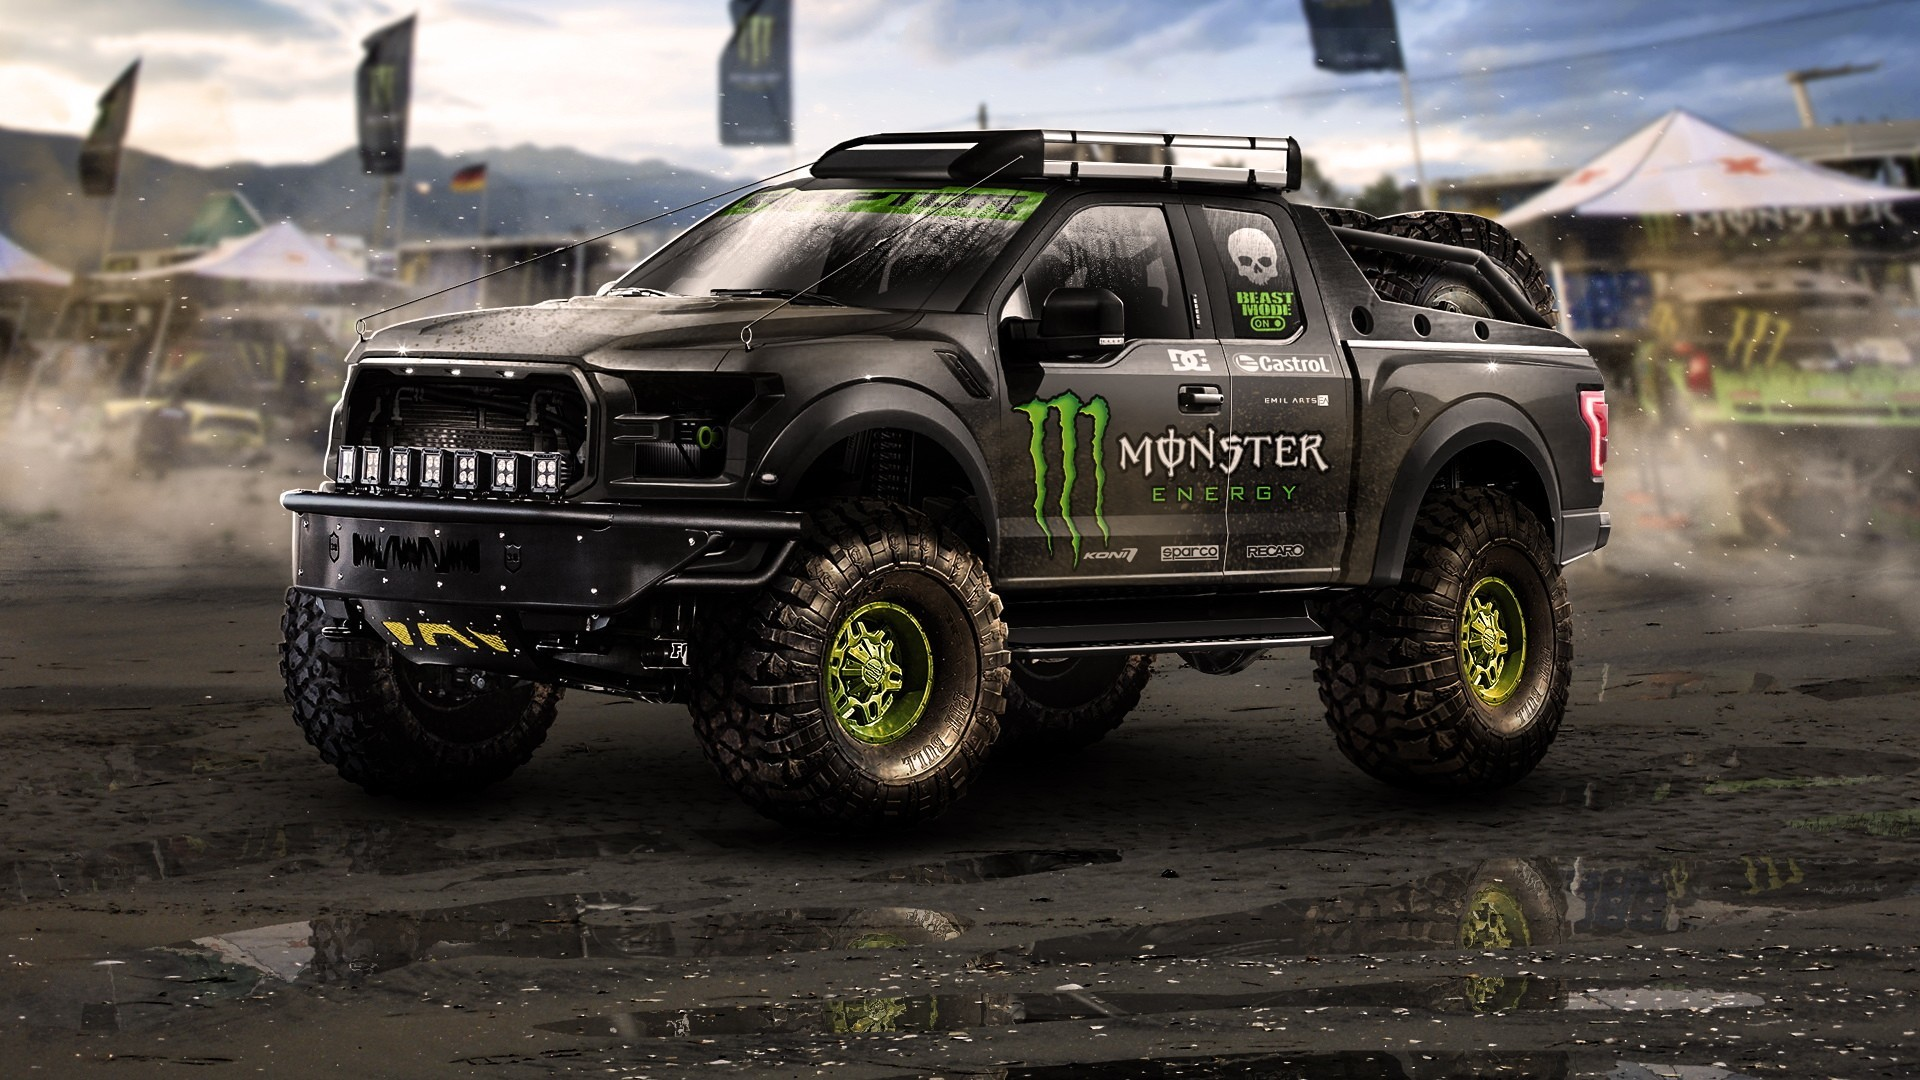 Res: 1920x1080, pickup trucks monster energy car wallpaper and background